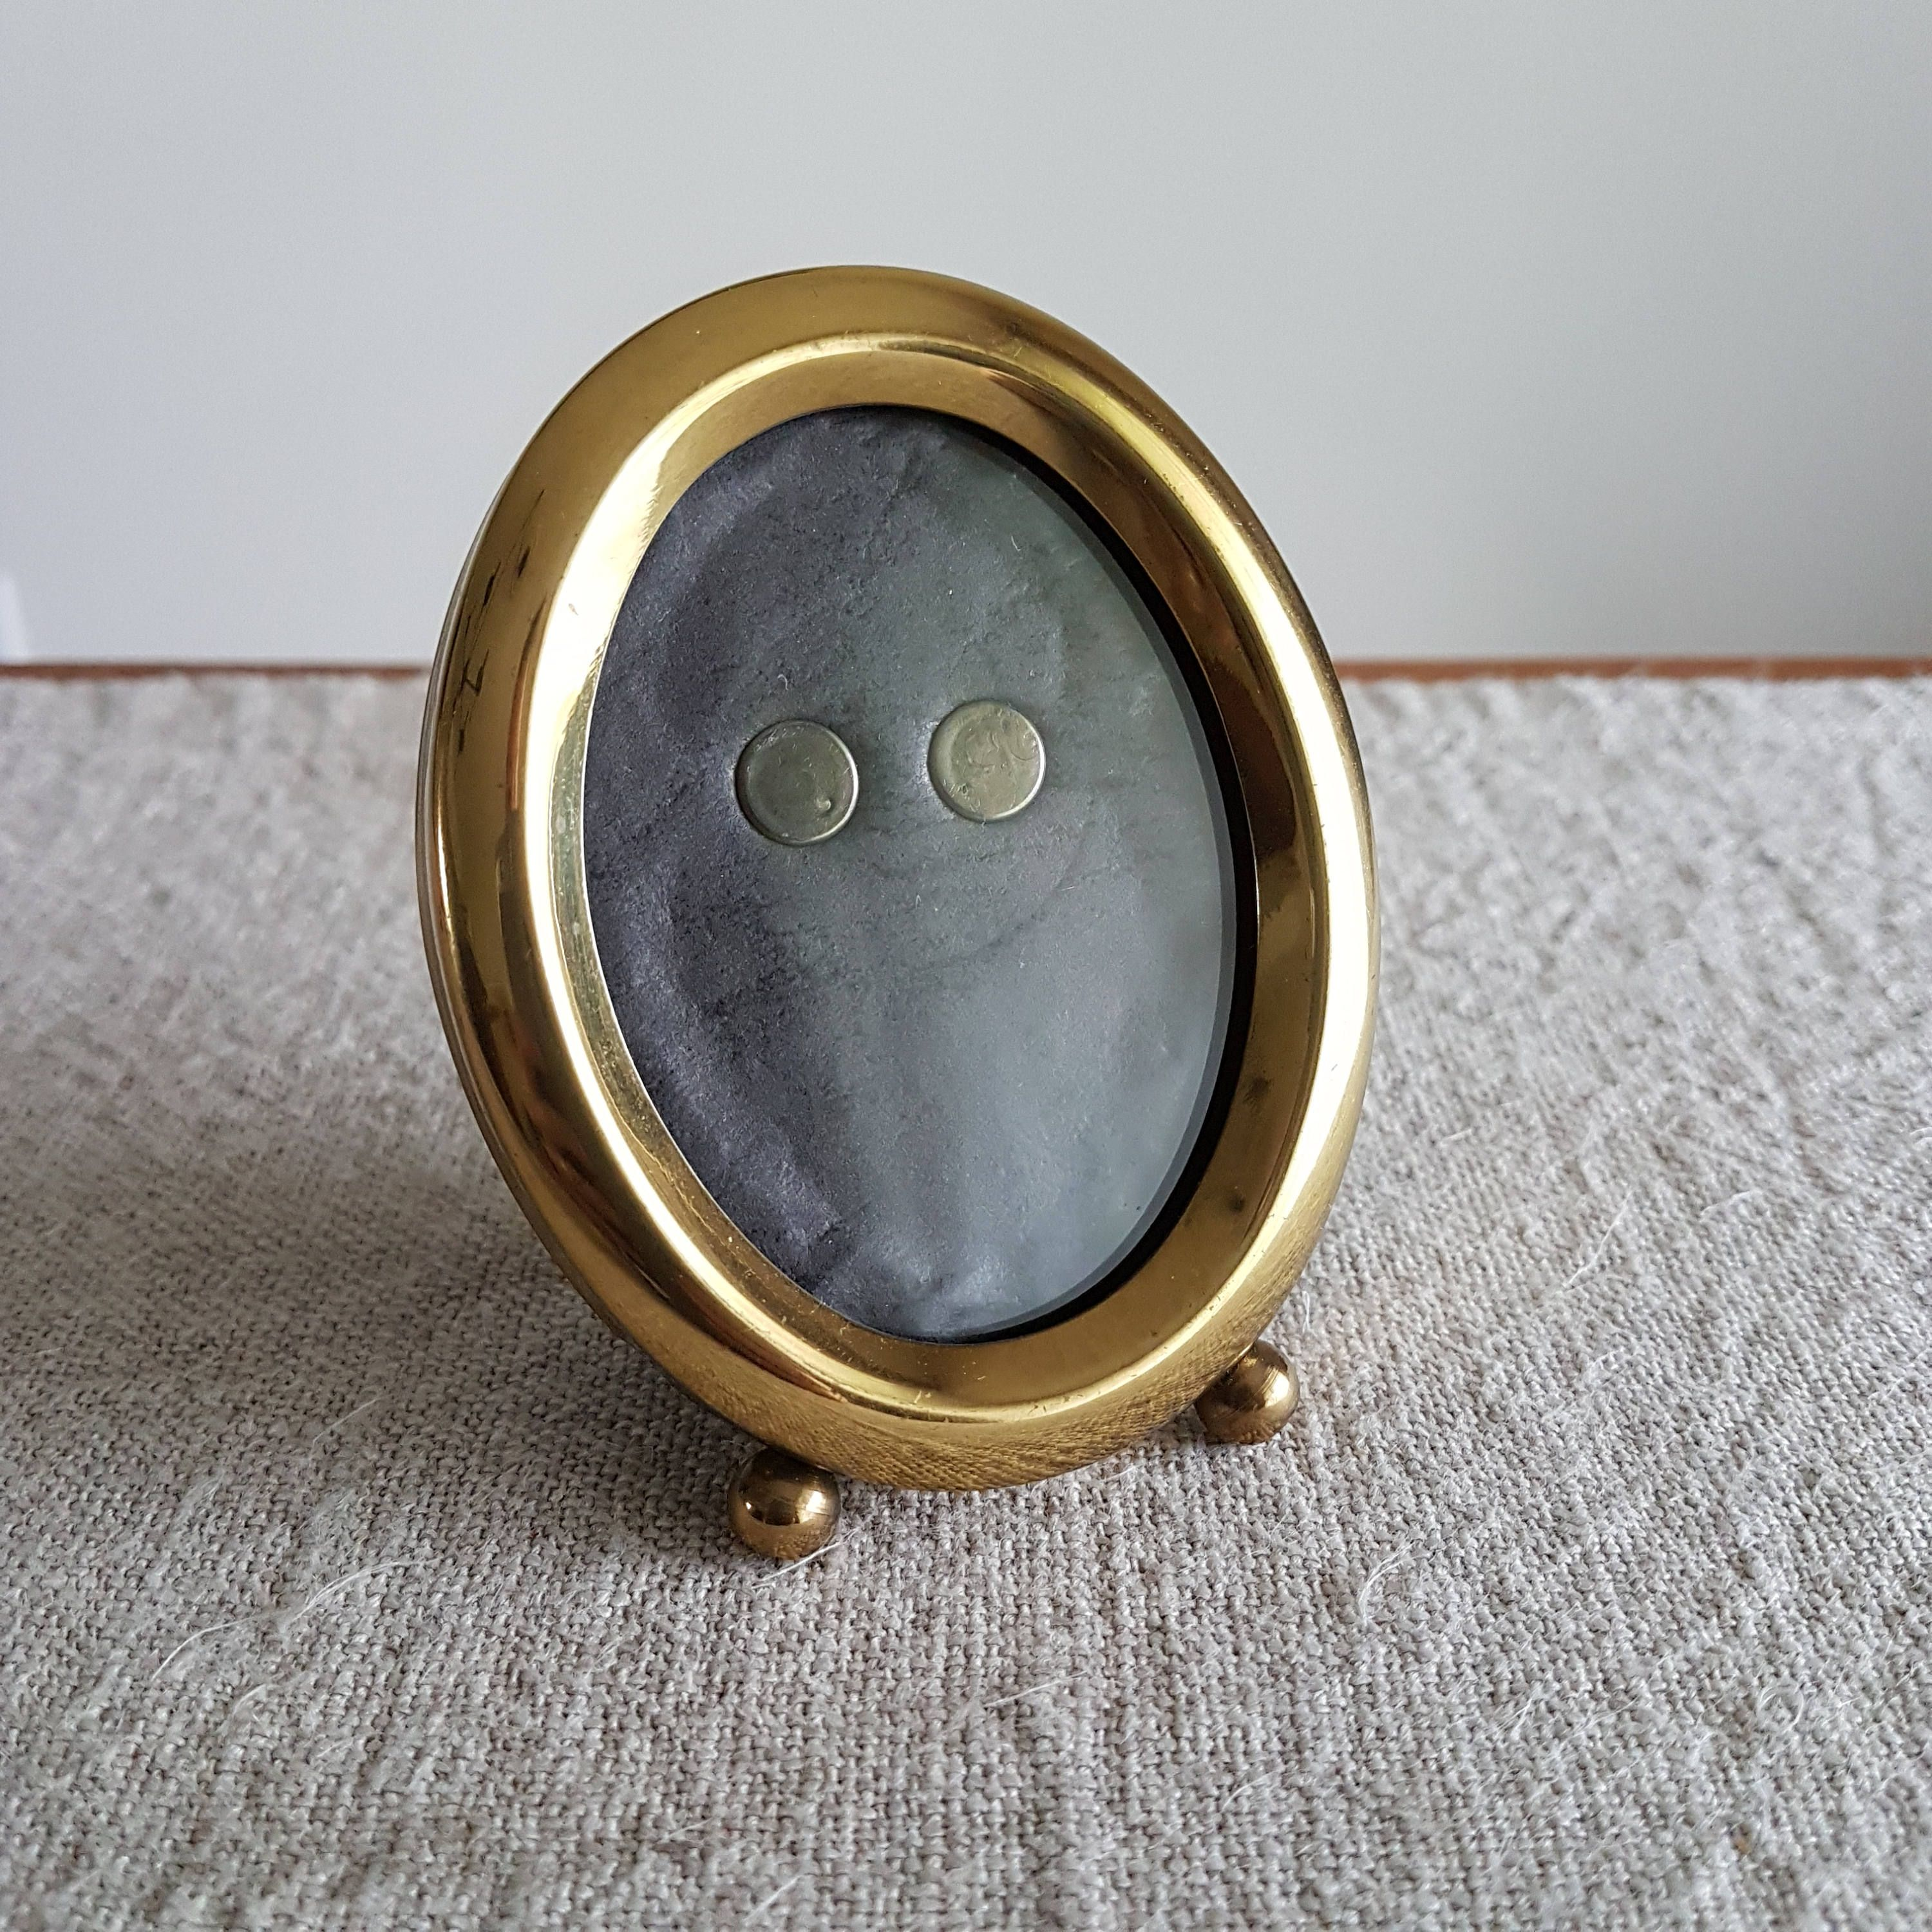 2 x 3 solid brass oval picture frame with ball feet gold x solid brass oval picture frame with ball feet gold metal photo frame wallet size photos boho or modern decor mini frame cm by bluechickenvintage on jeuxipadfo Image collections